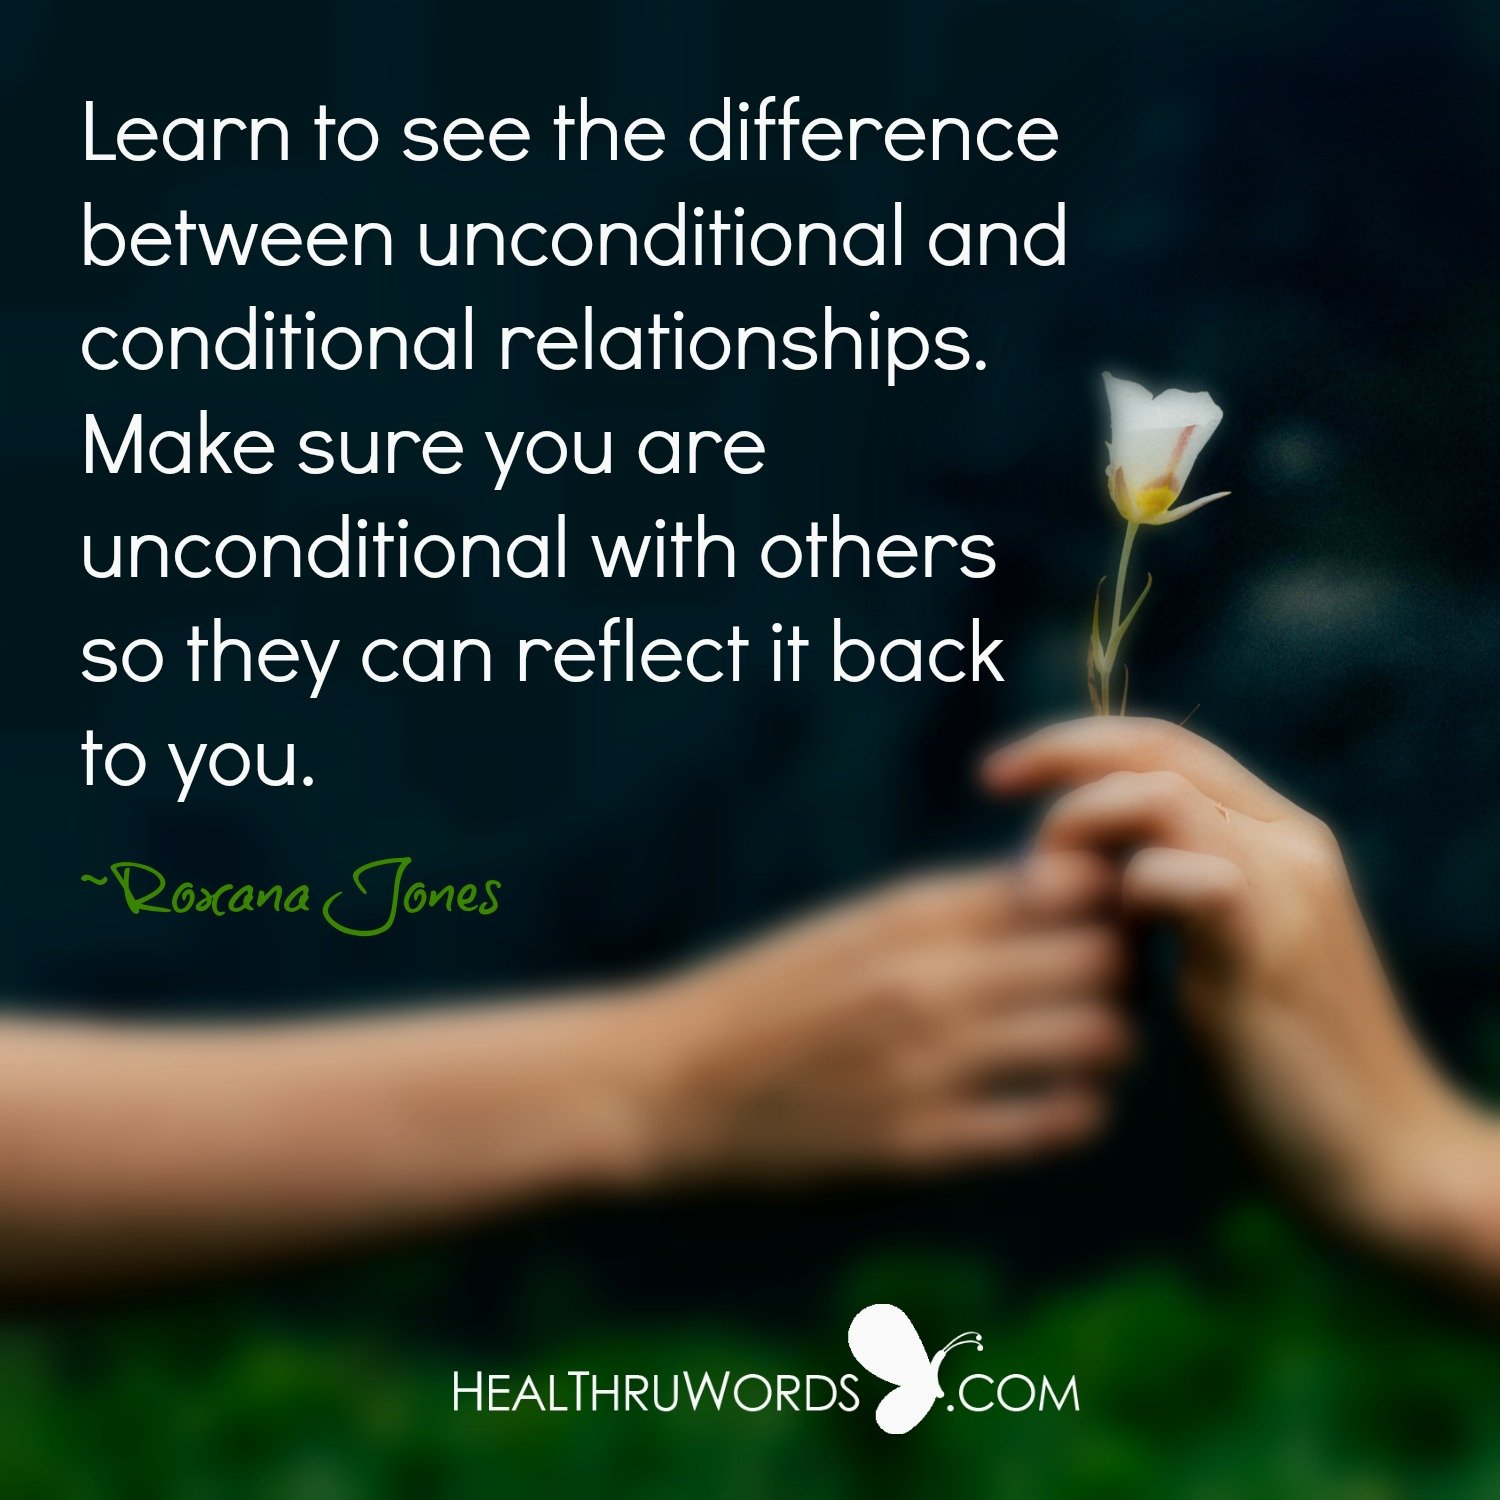 Inspirational Image: Unconditional Reflections